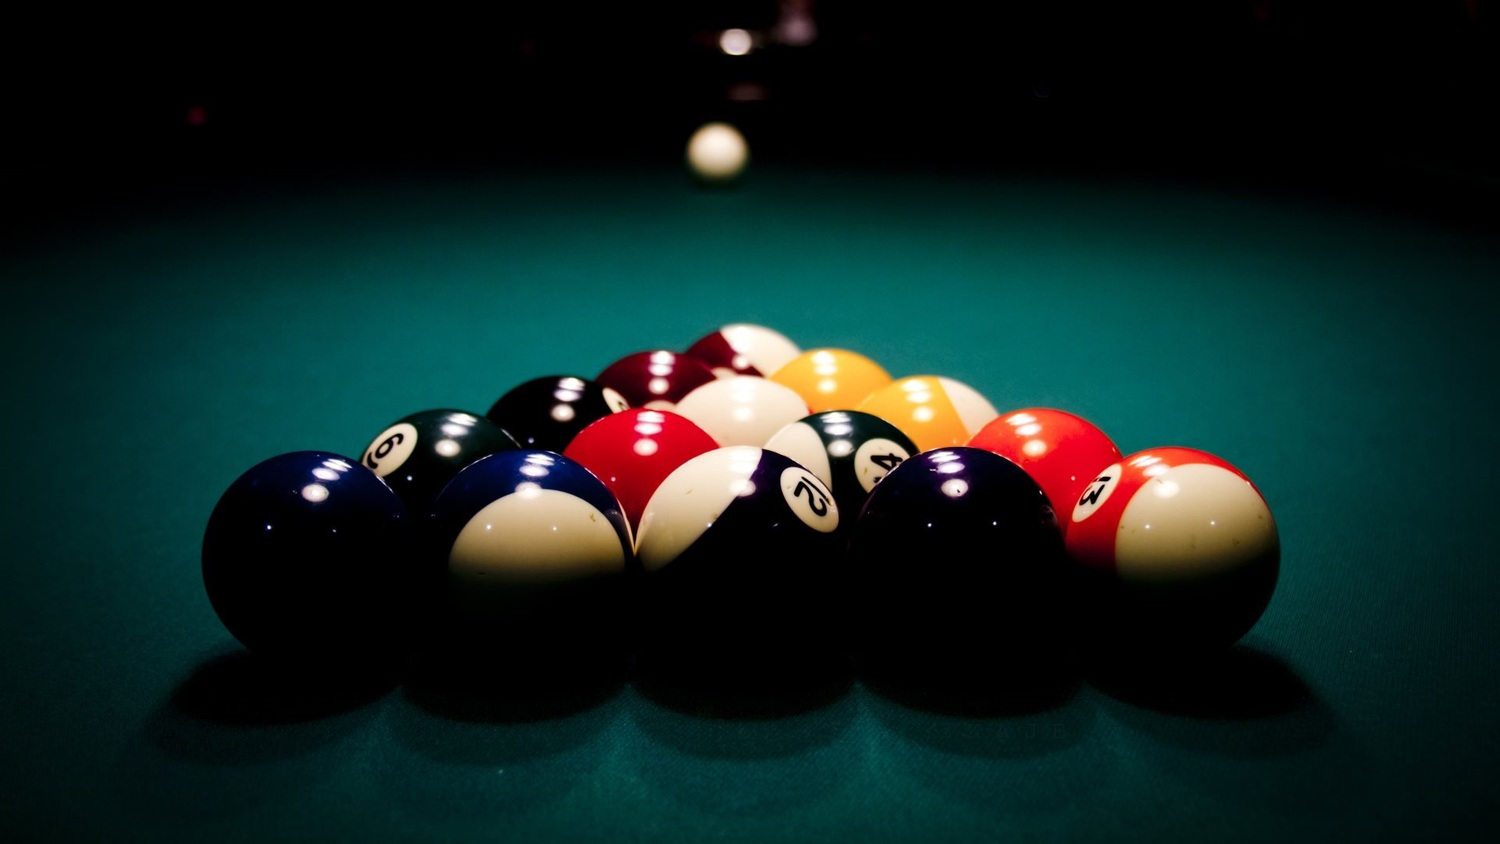 America Billiards Pool Tables Game Tables Services Accessories - Sports authority pool table